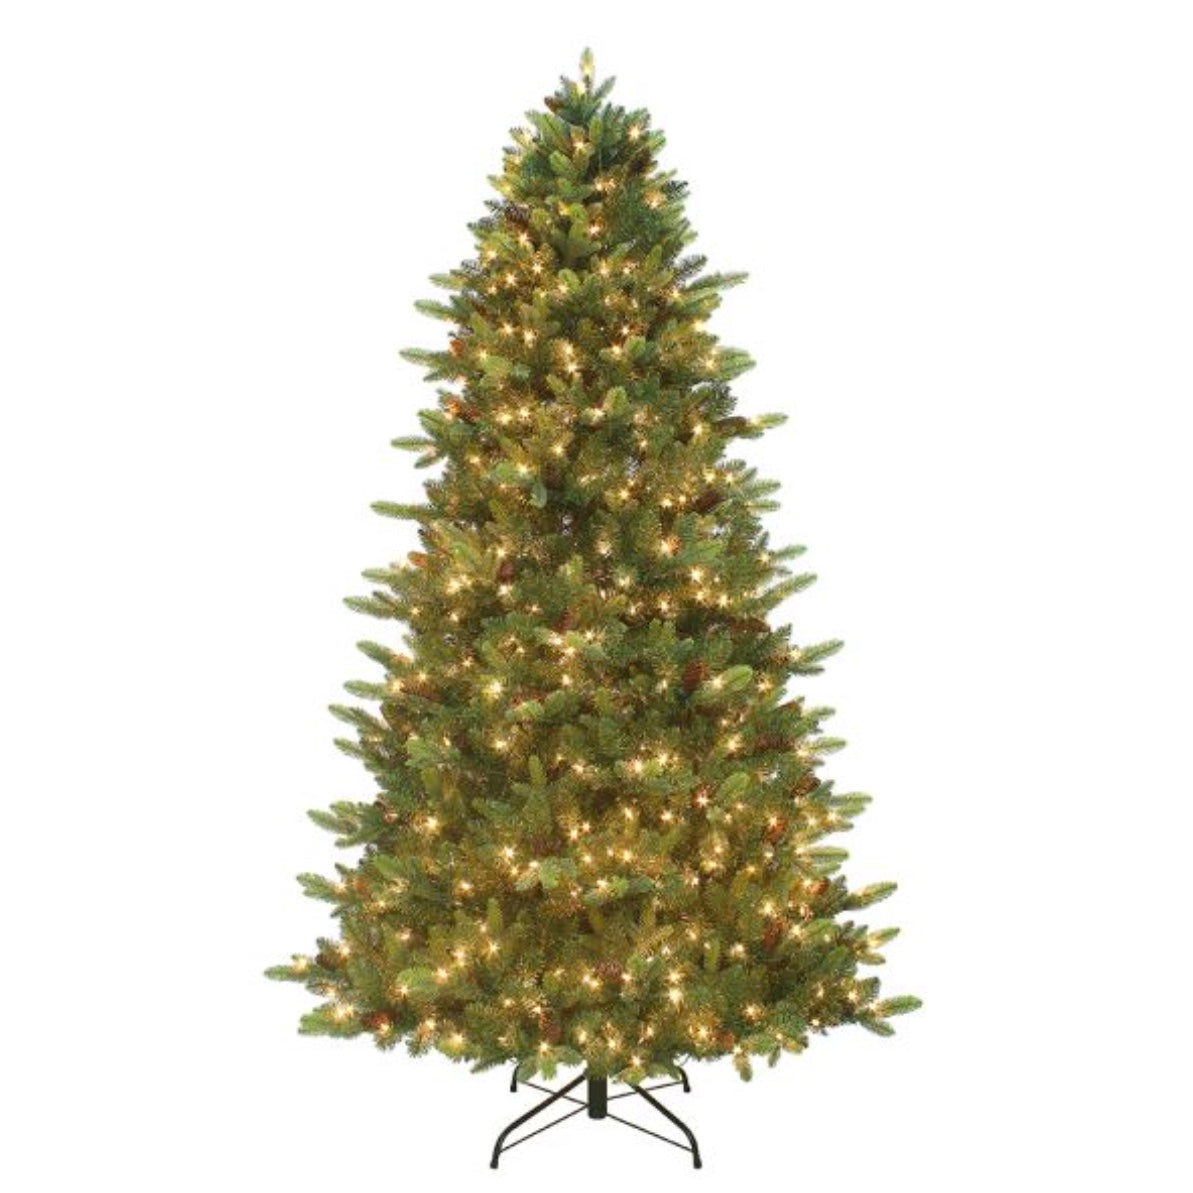 Pre-Lit Twinkle LED Christmas Tree With Pinecones 7.5-Foot - Putti Canada